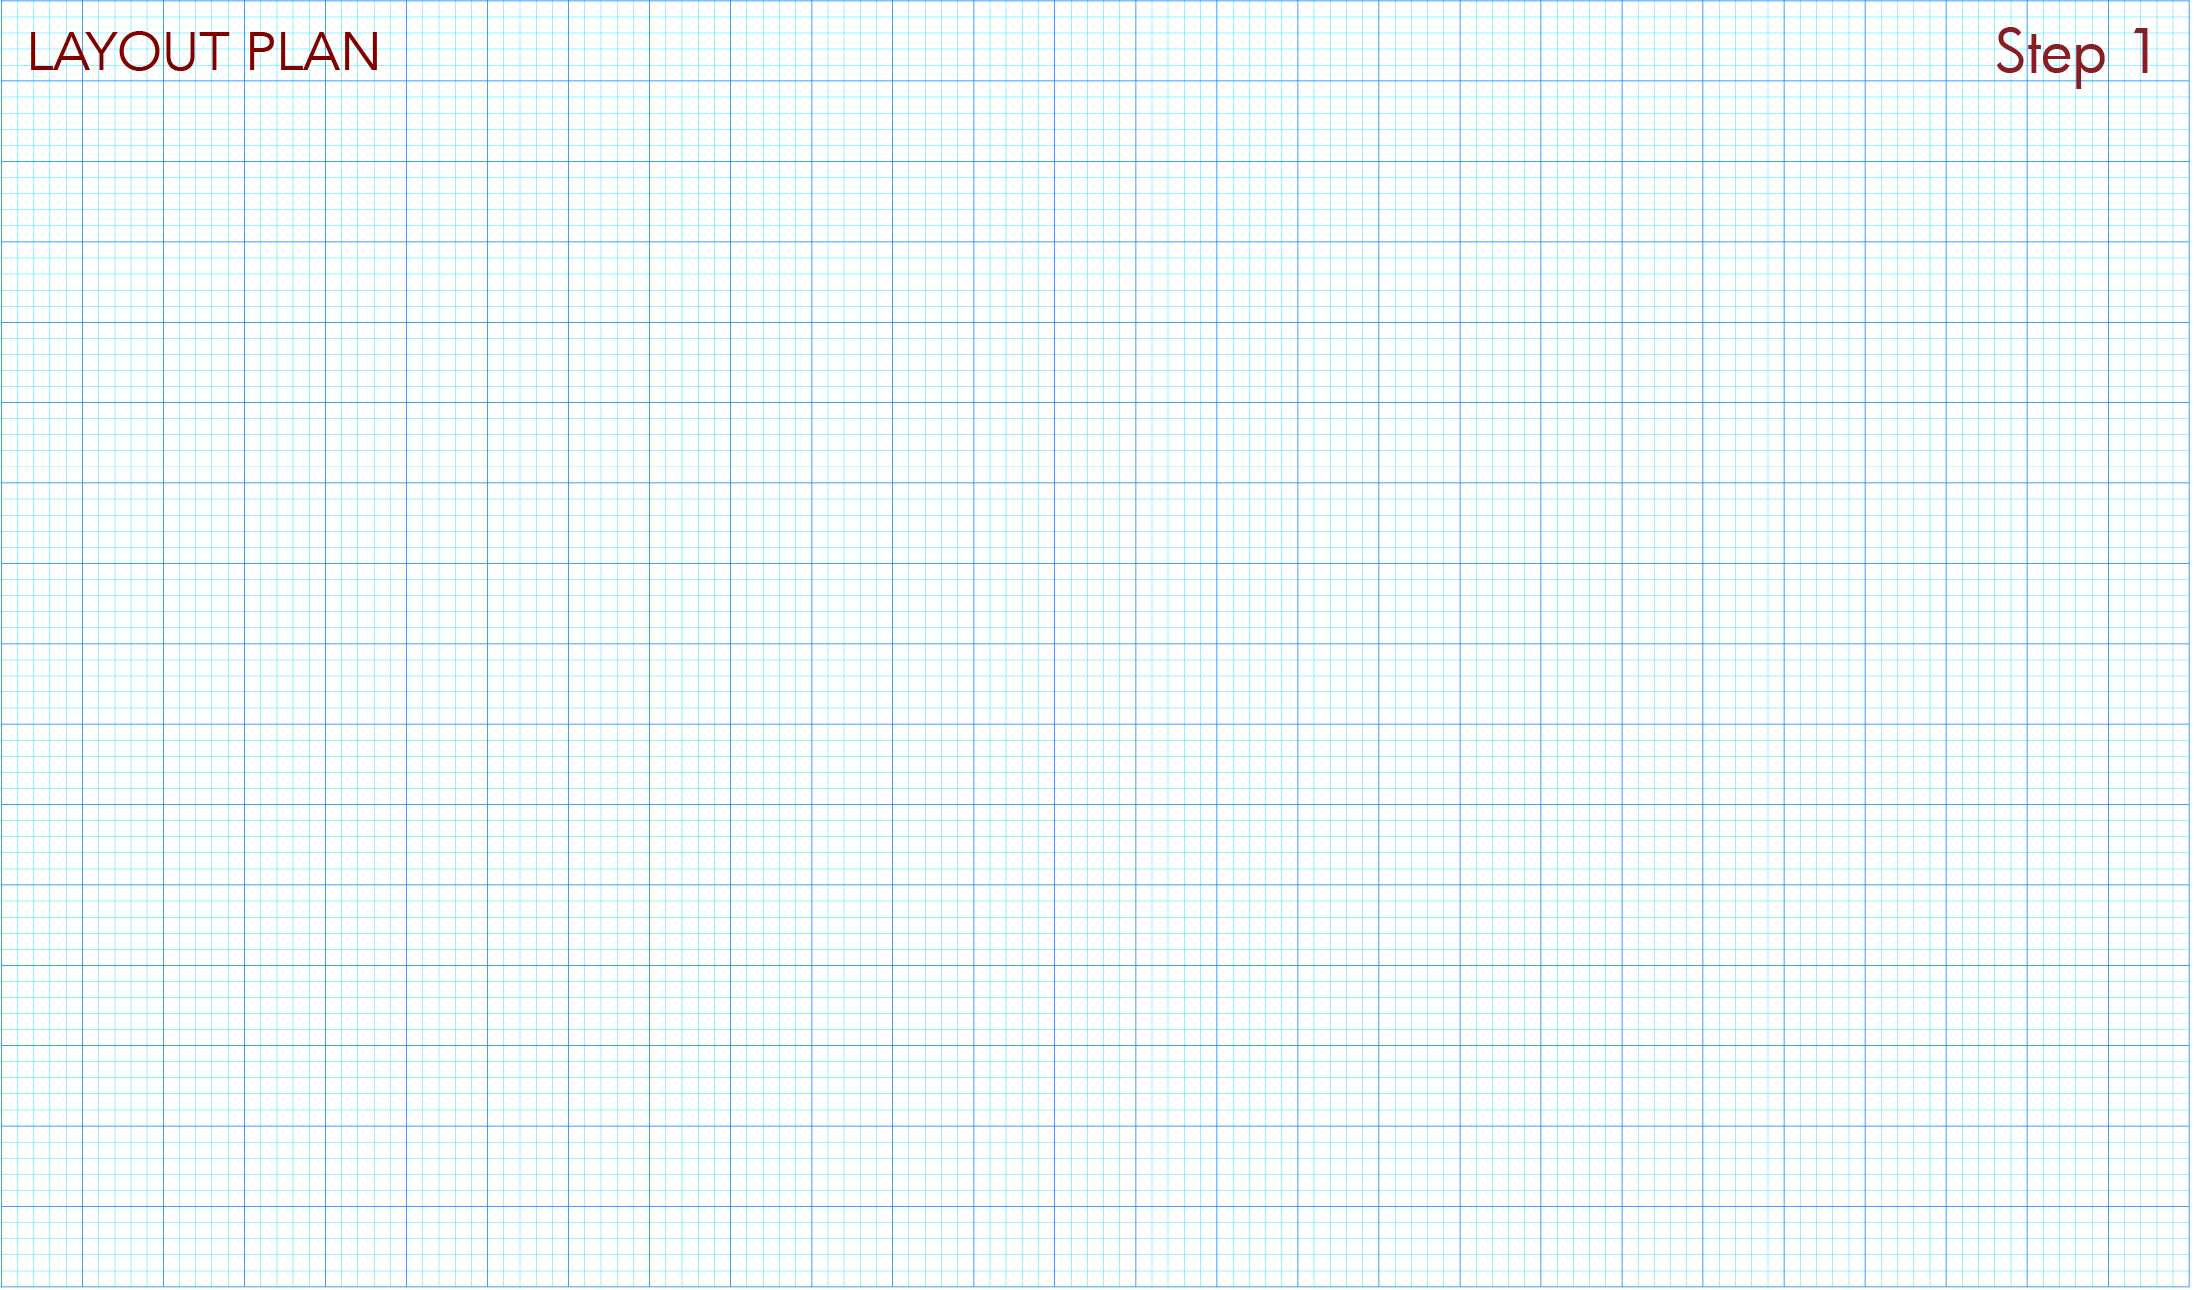 Download and print layout plan graph paper